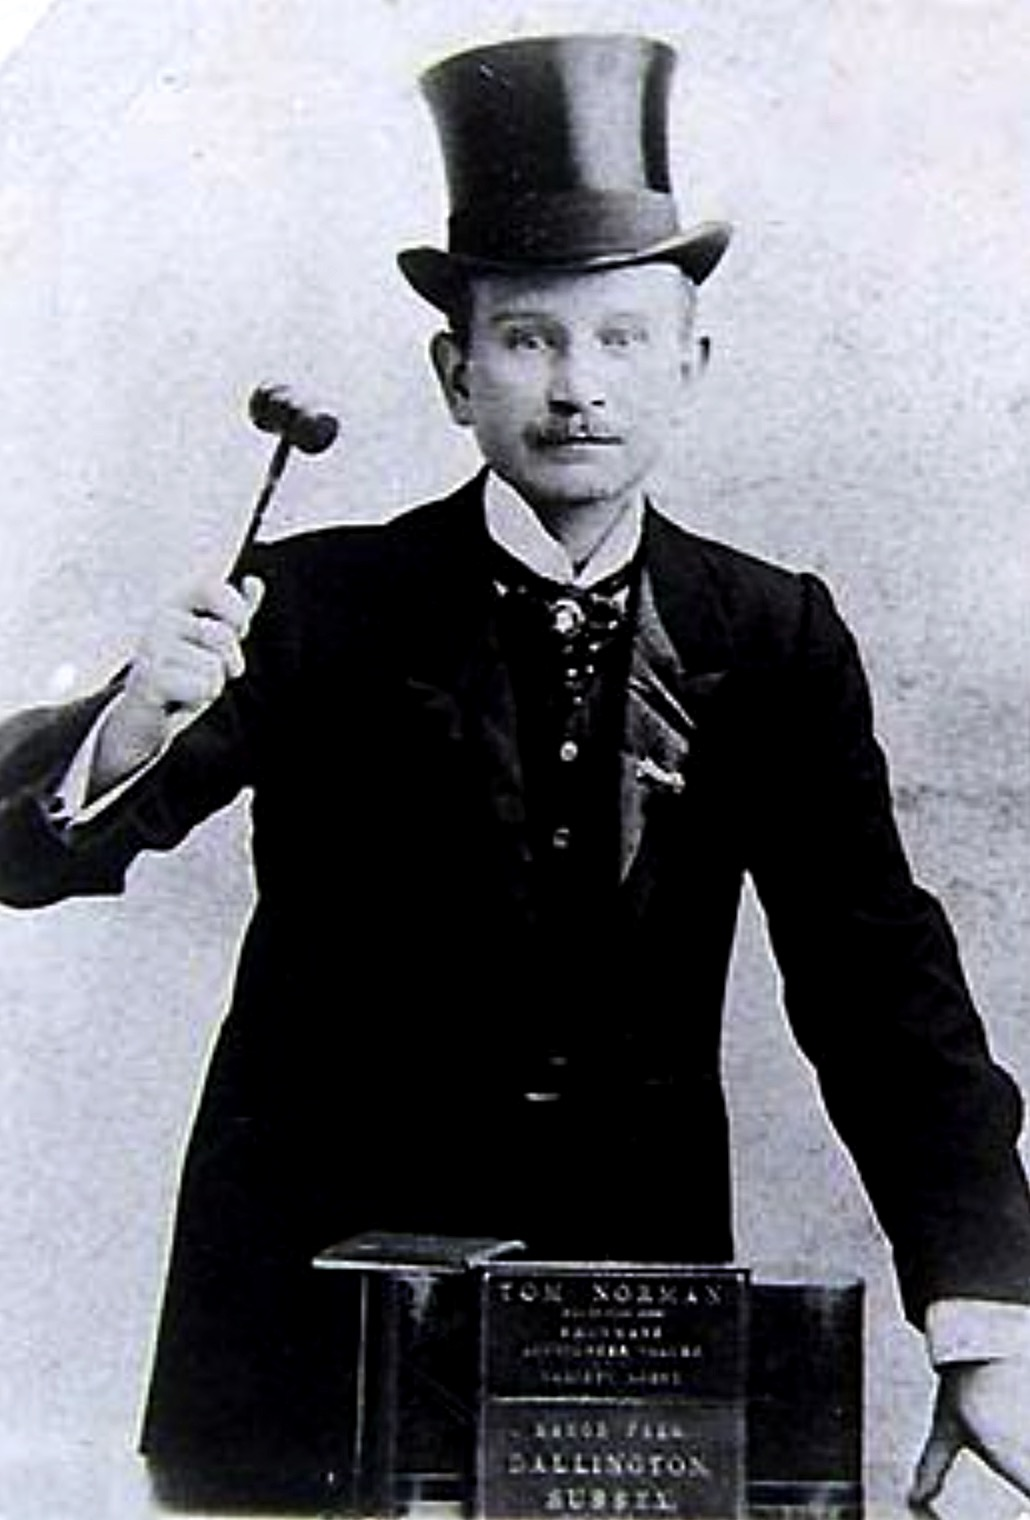 Tom Norman, the Elephant Man's Manager